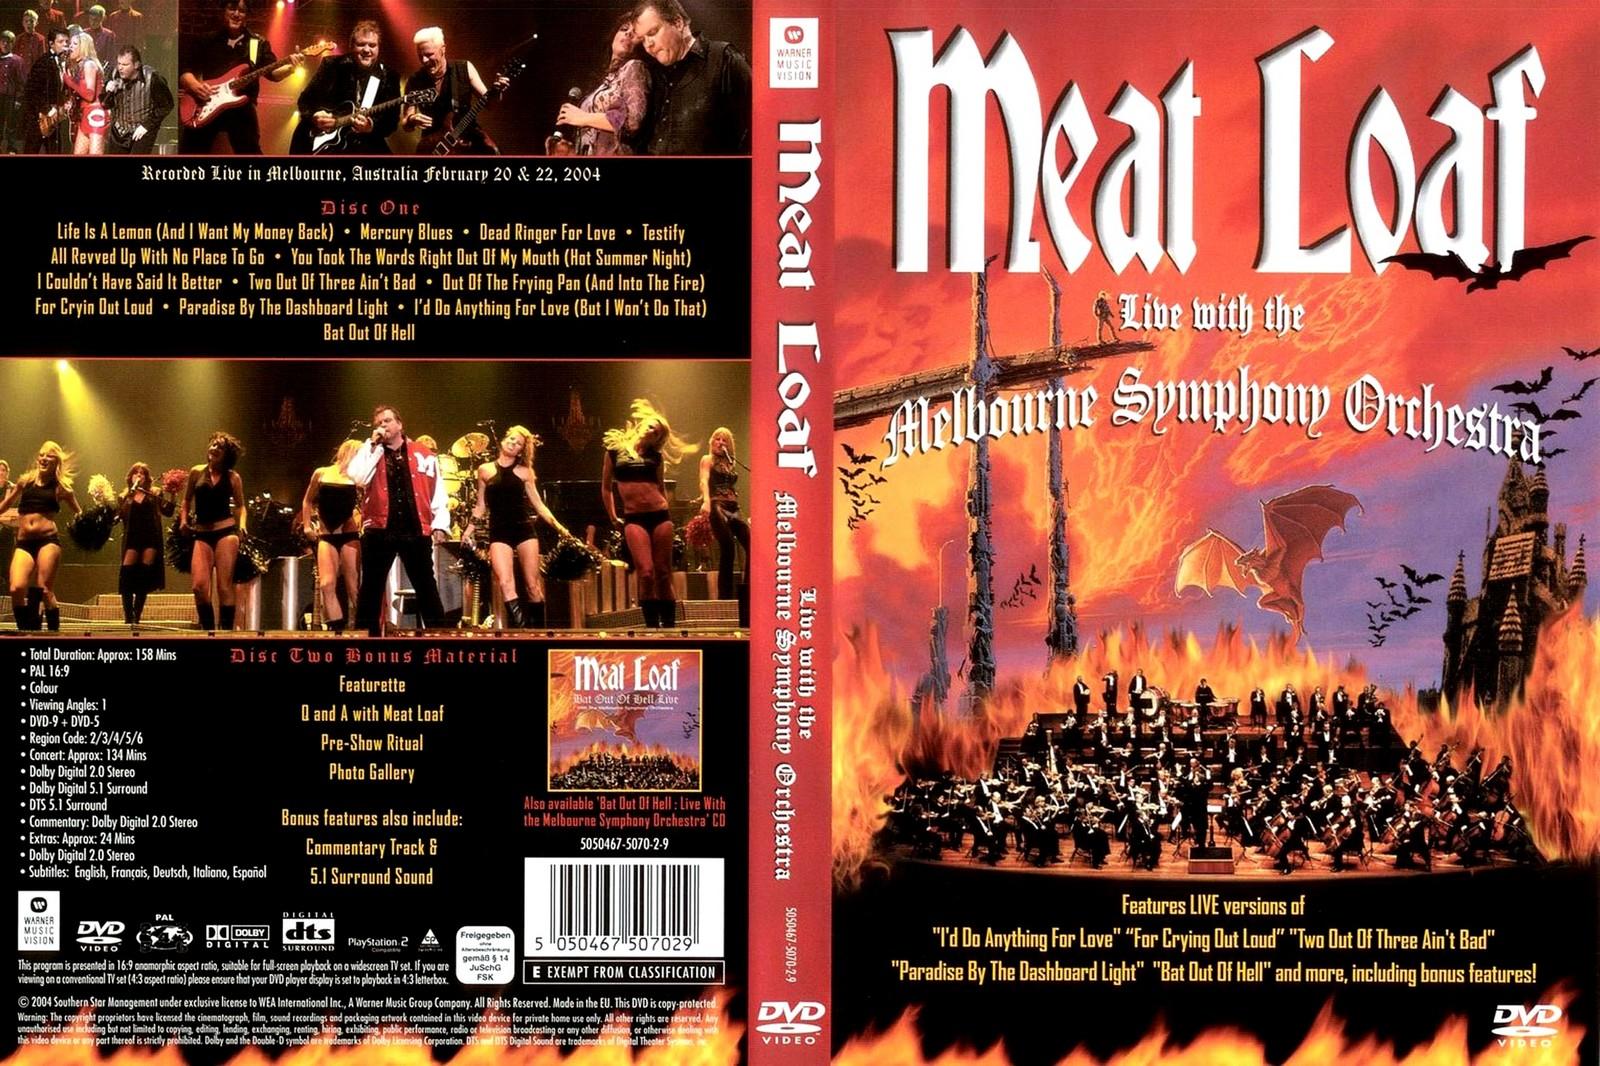 http://1.bp.blogspot.com/_brcl7Spzbn4/TJEez3mufAI/AAAAAAAAAnI/bz_LZ1Oqt8c/s1600/Meat-Loaf-Live-With-The-Melbourne-Symphony-Orchestra.jpg